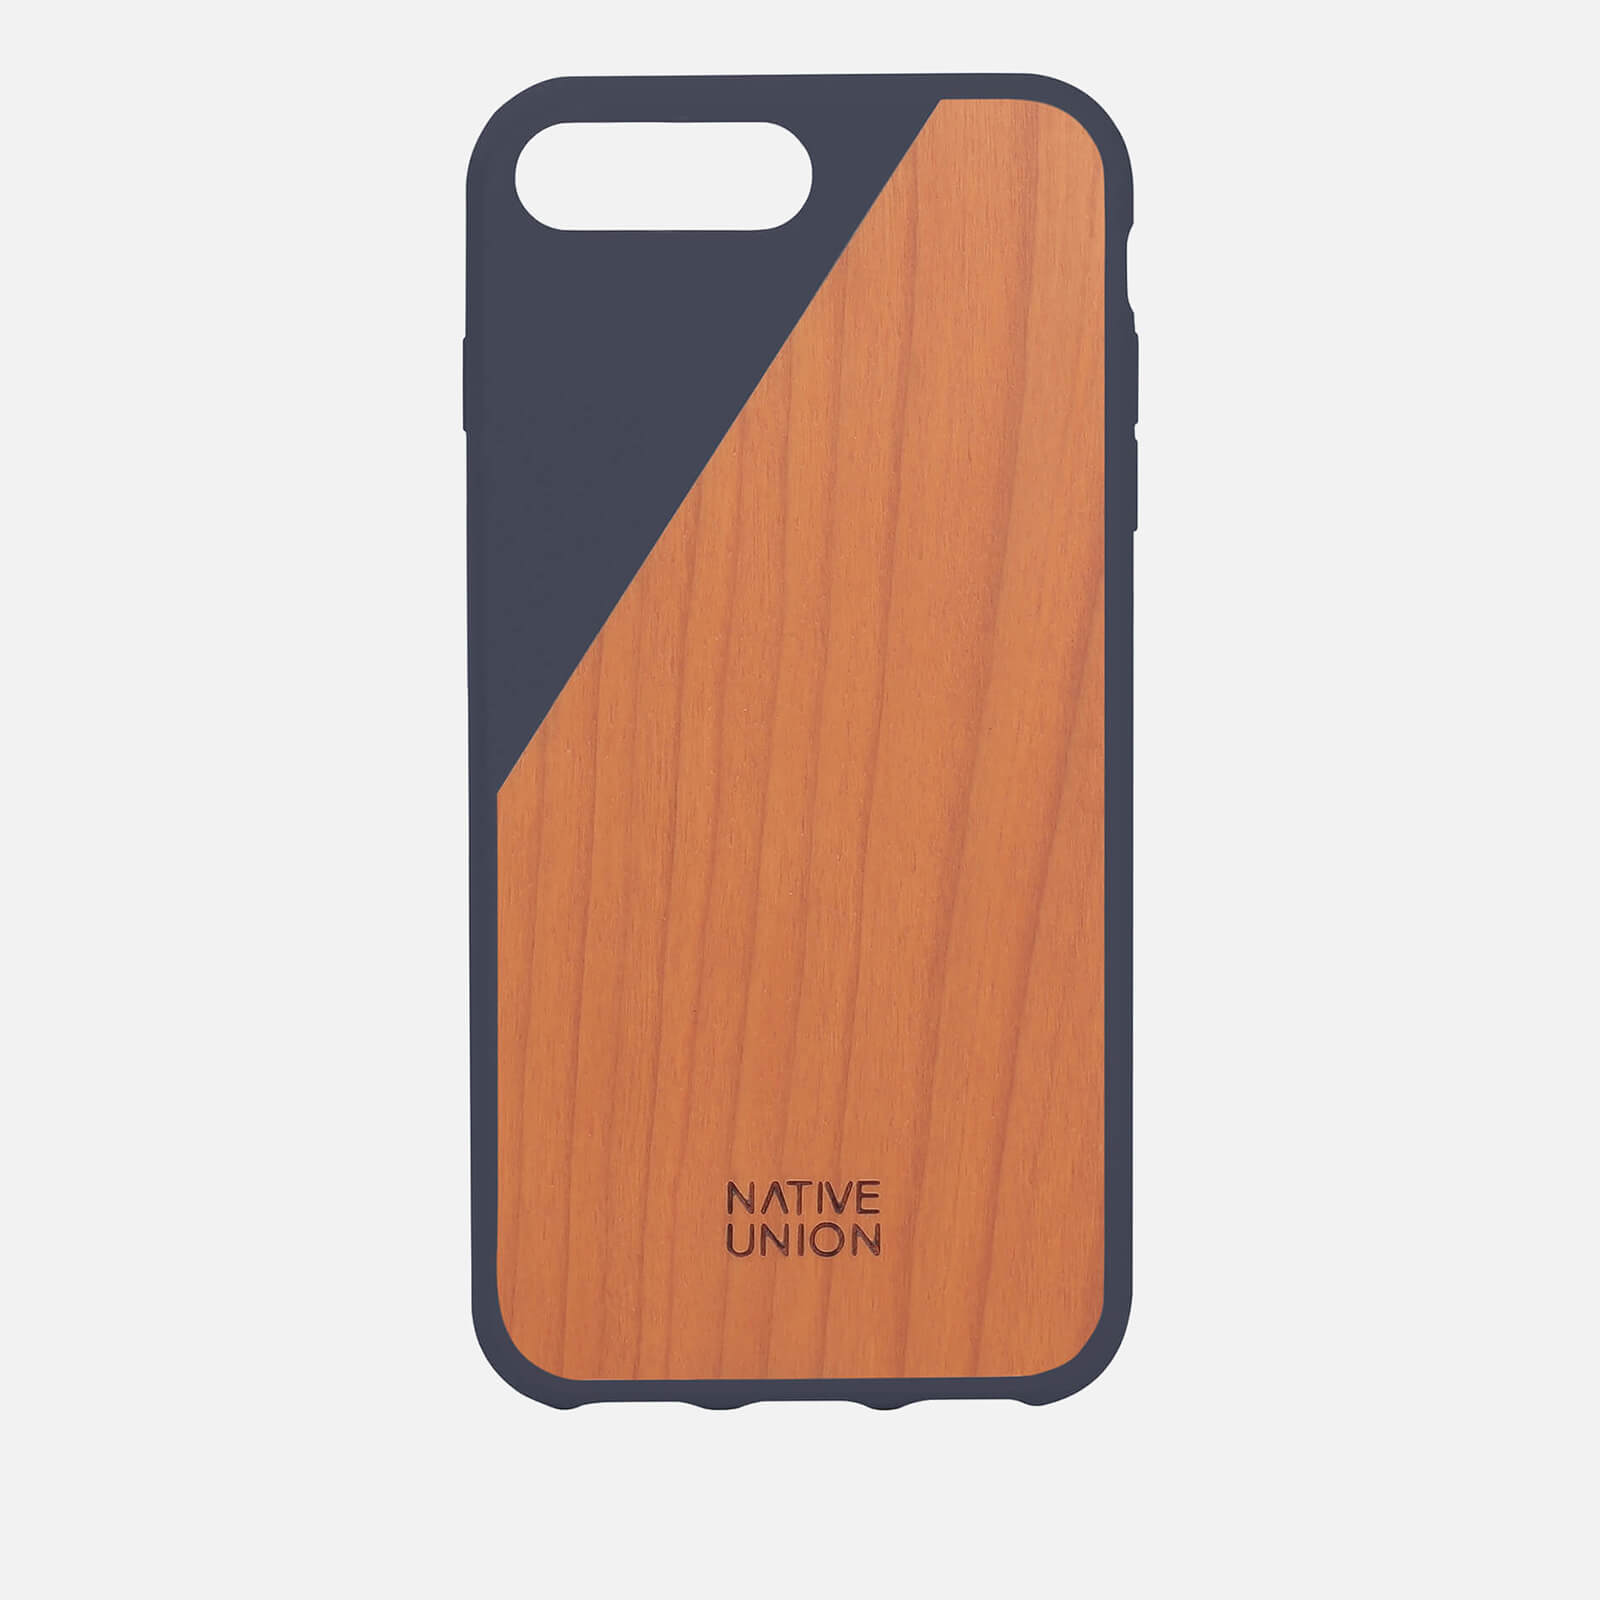 quality design 2d5bc d1de2 Native Union Clic Wooden iPhone 7 Plus Case - Marine